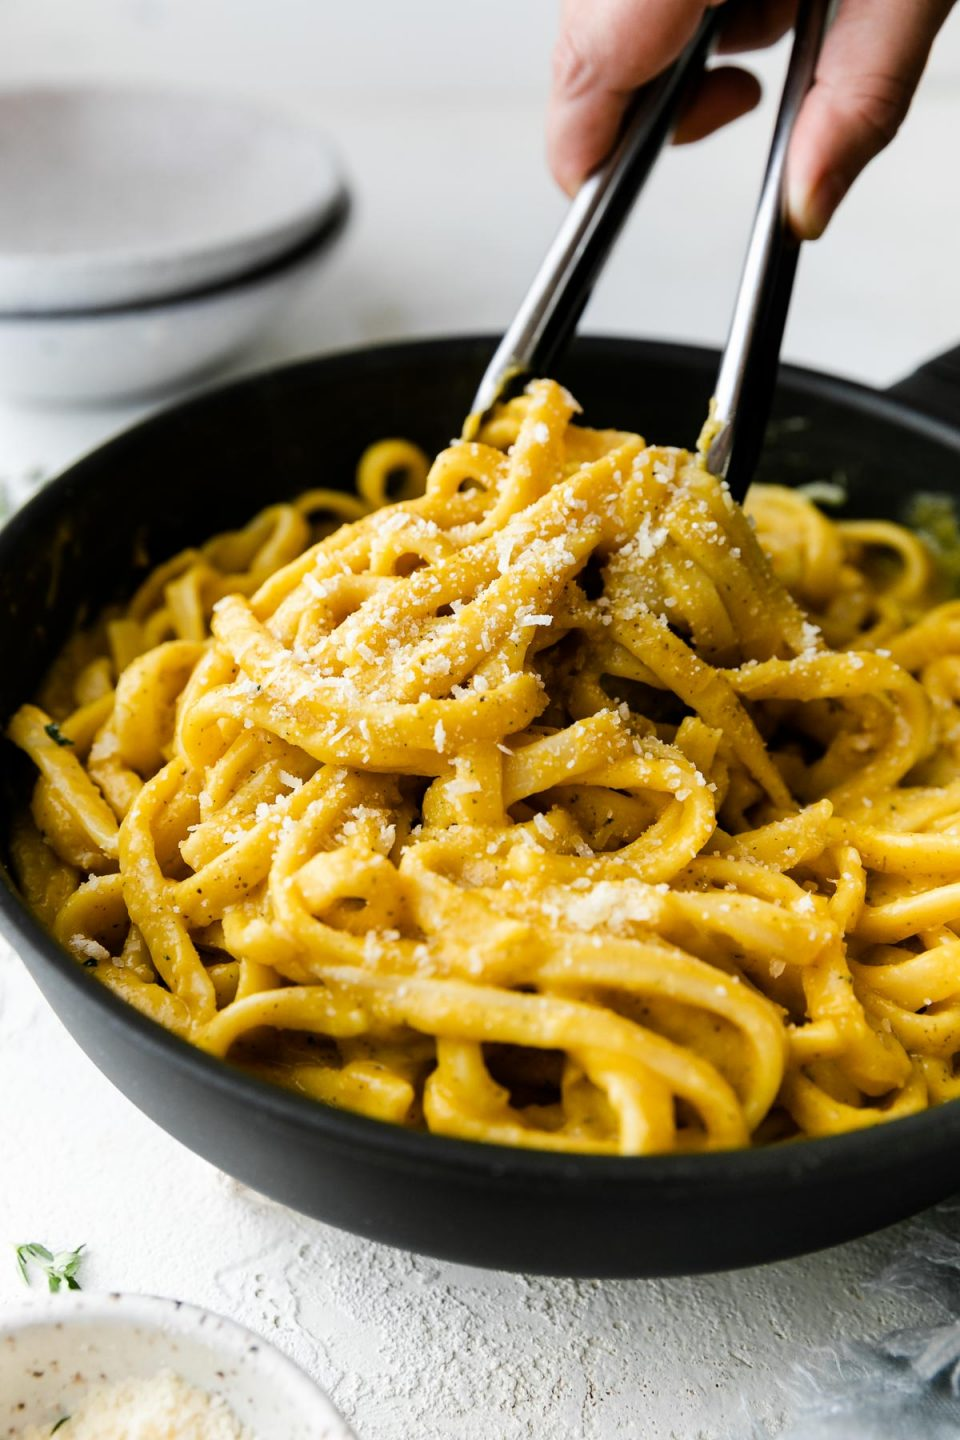 A small skillet filled with cooked linguine noodles tossed in creamy butternut squash pasta sauce. The noodles have been garnished with freshly grated parmesan & ground black pepper. A woman's hand picks up some of the pasta using a set of tongs. The skillet sits atop a white textured surface with an empty pasta bowl in the background & a small speckled bowl filled with grated parmesan cheese in the foreground.